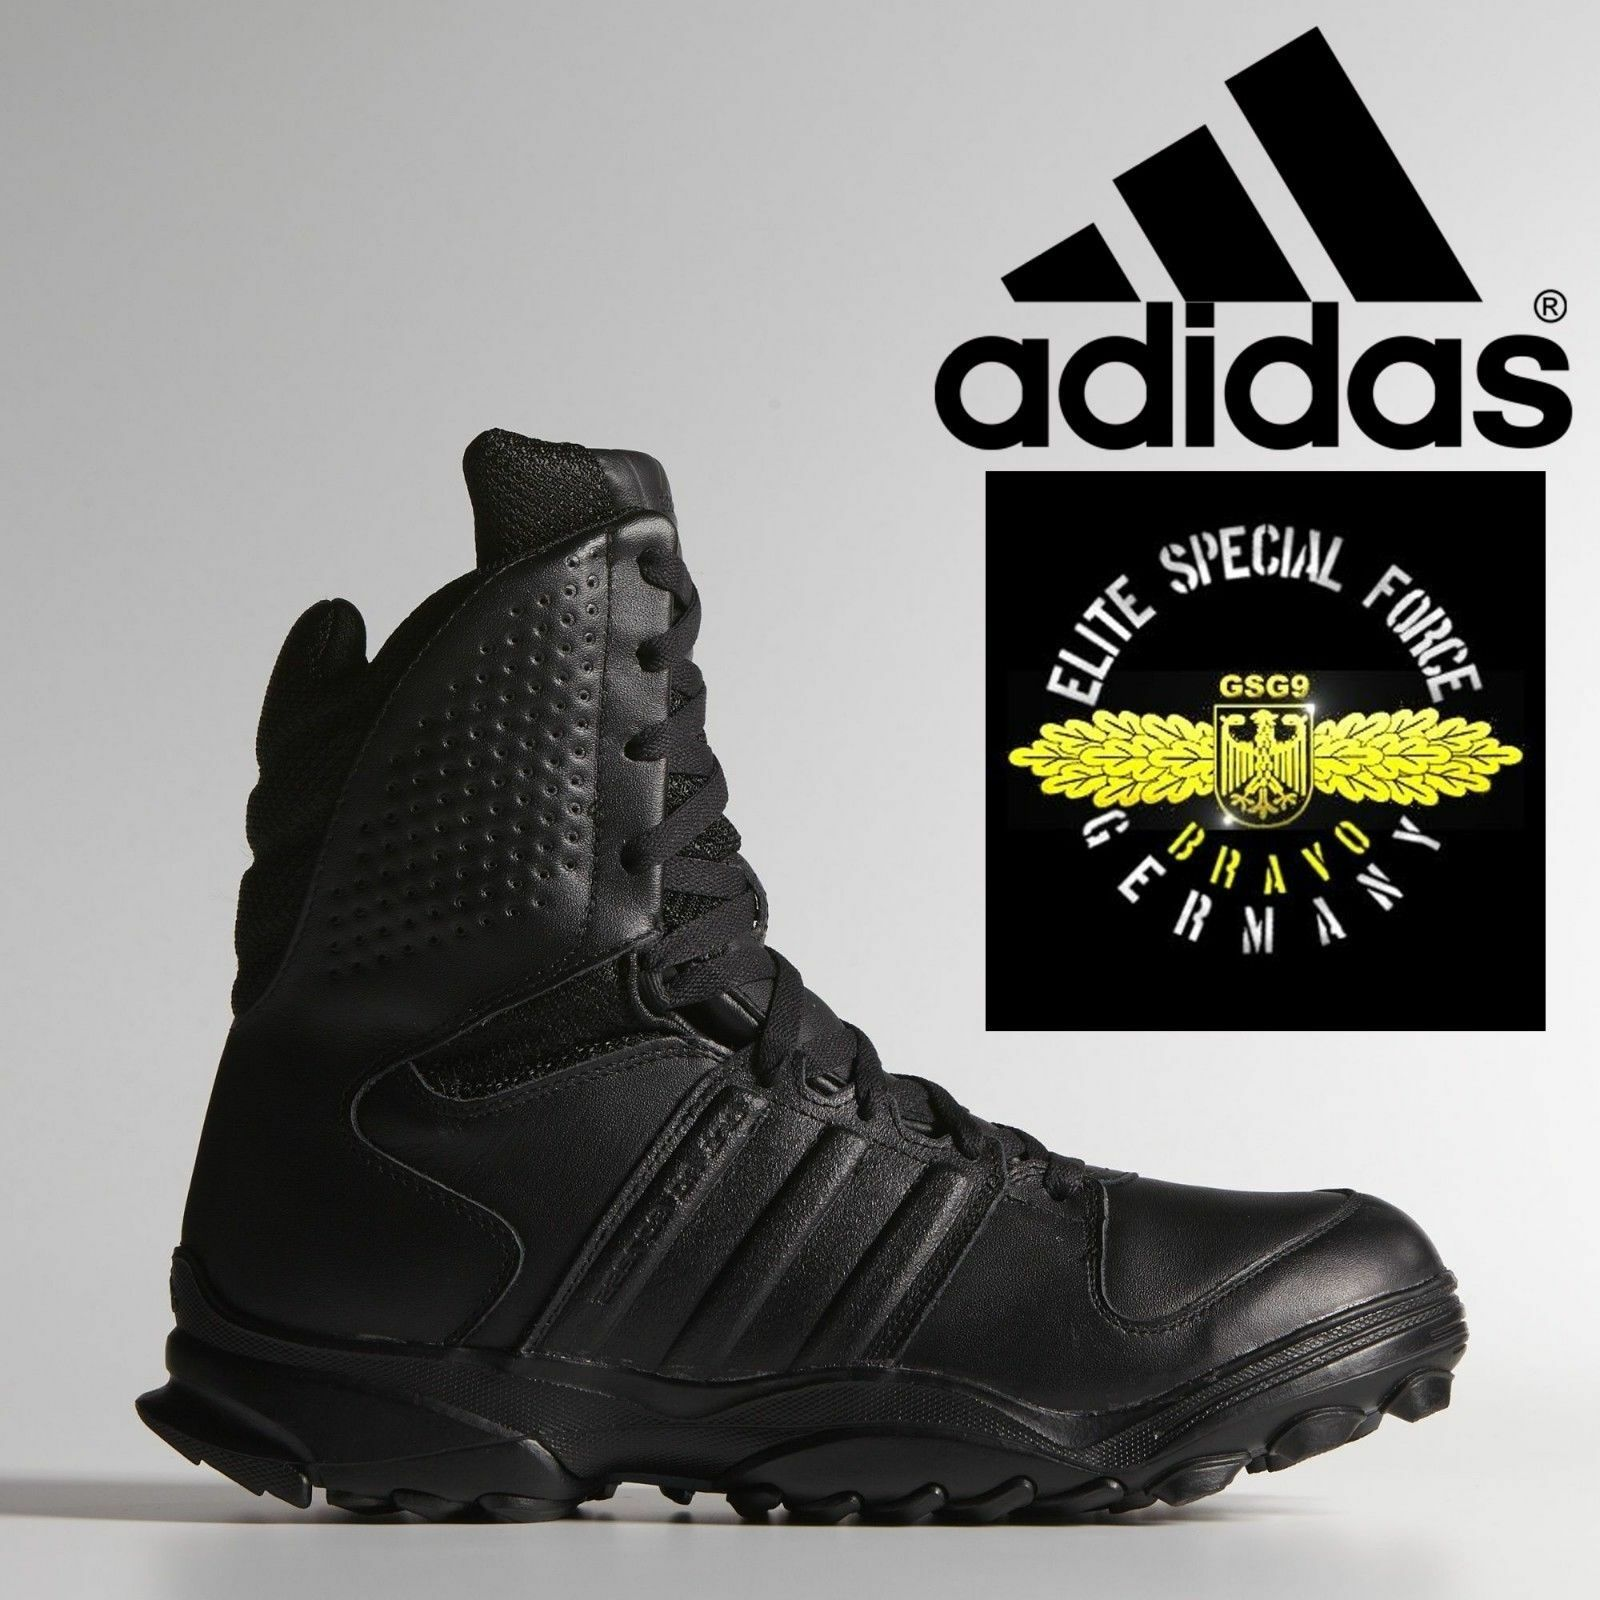 Adidas GSG 9.2 Boots Men's (100% Leather Waterproof) Train Tactical shoes w  Box